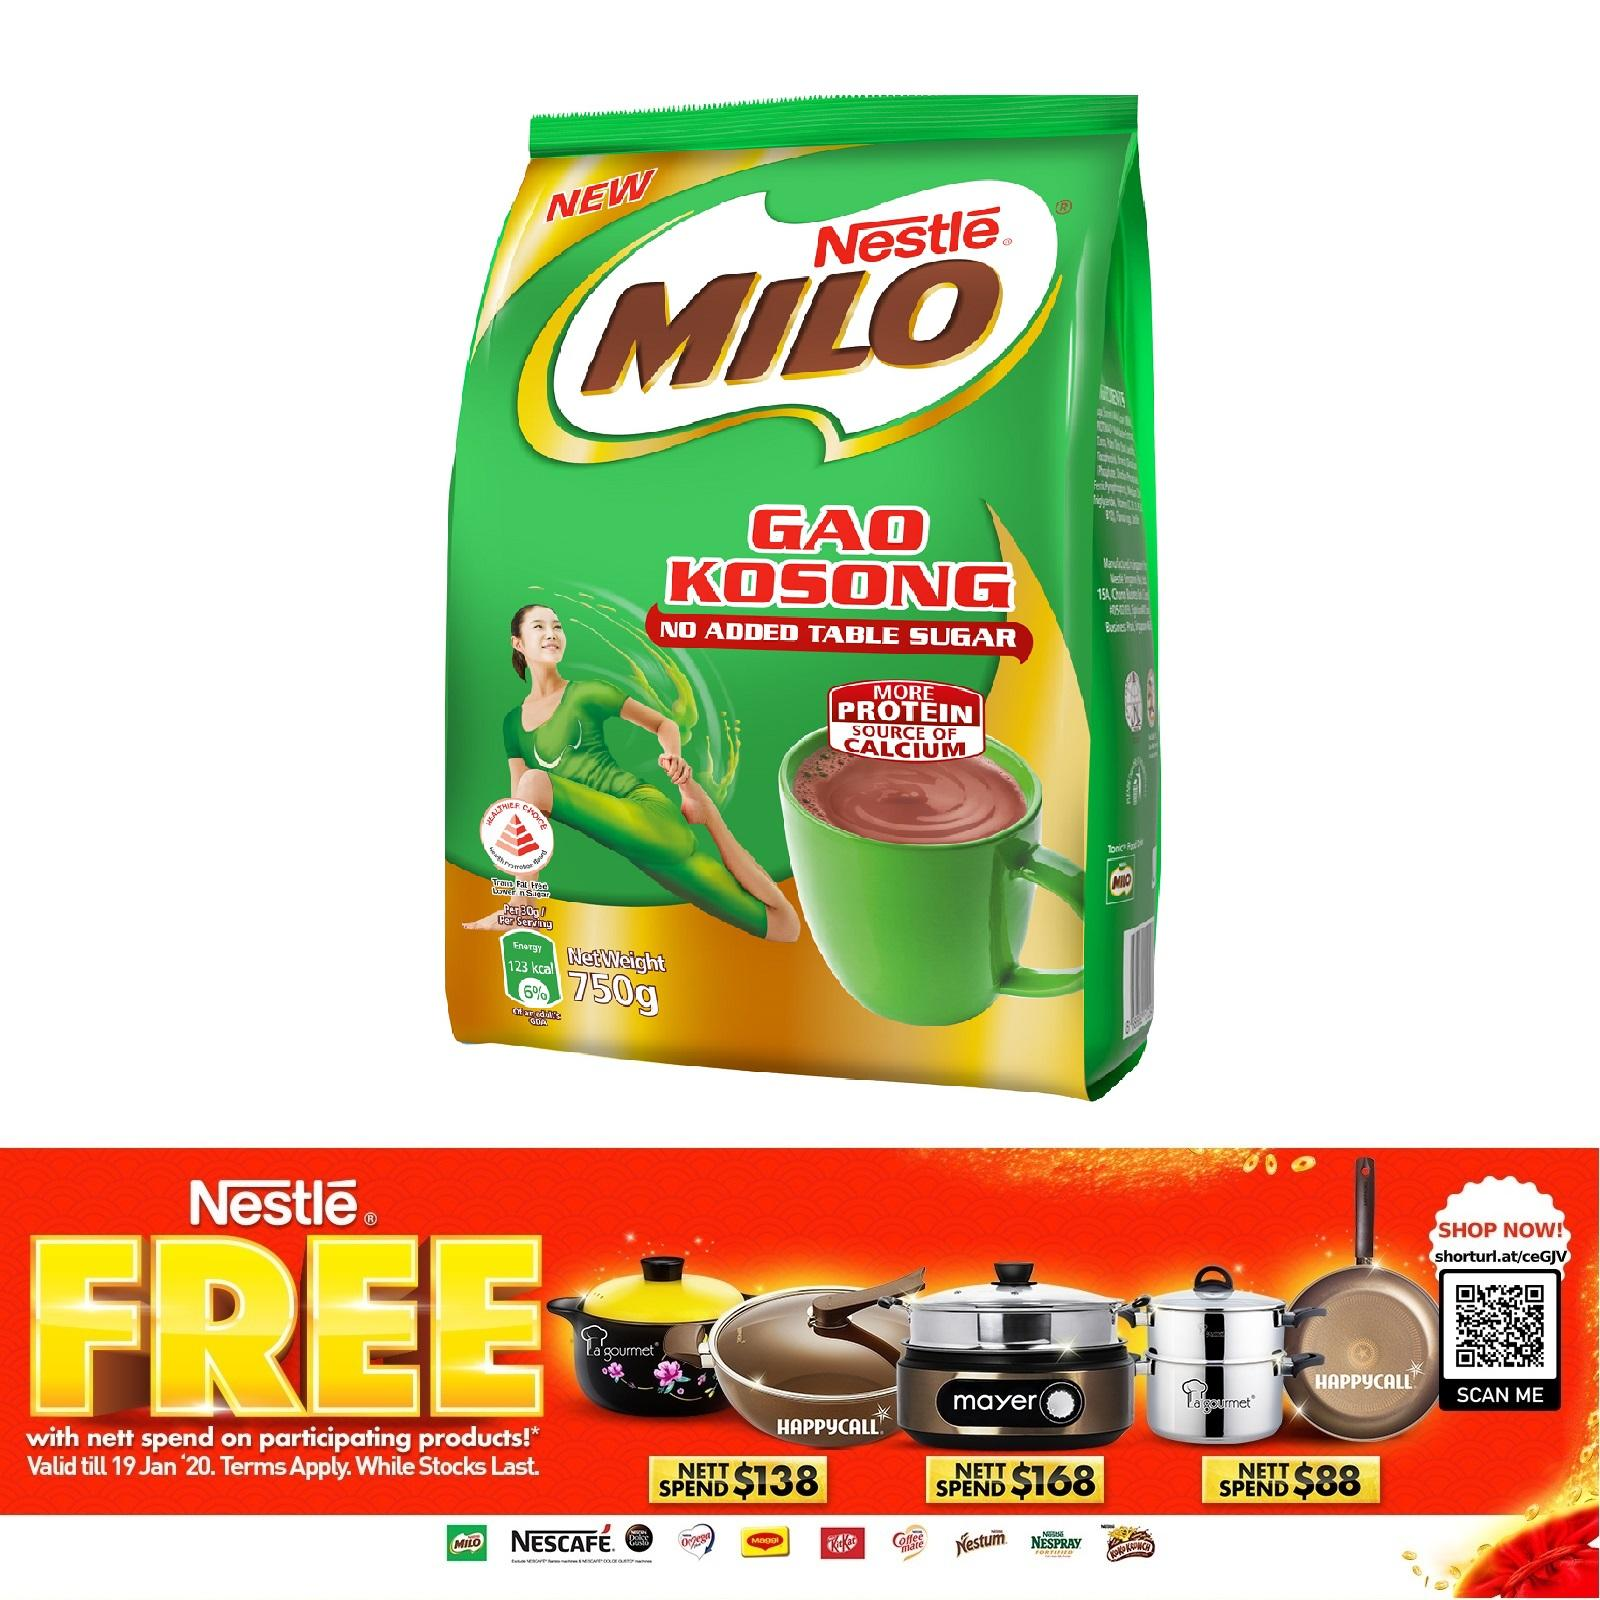 MILO Zero Added Table Sugar Powder Refill Pack 750g (GAO KOSONG)